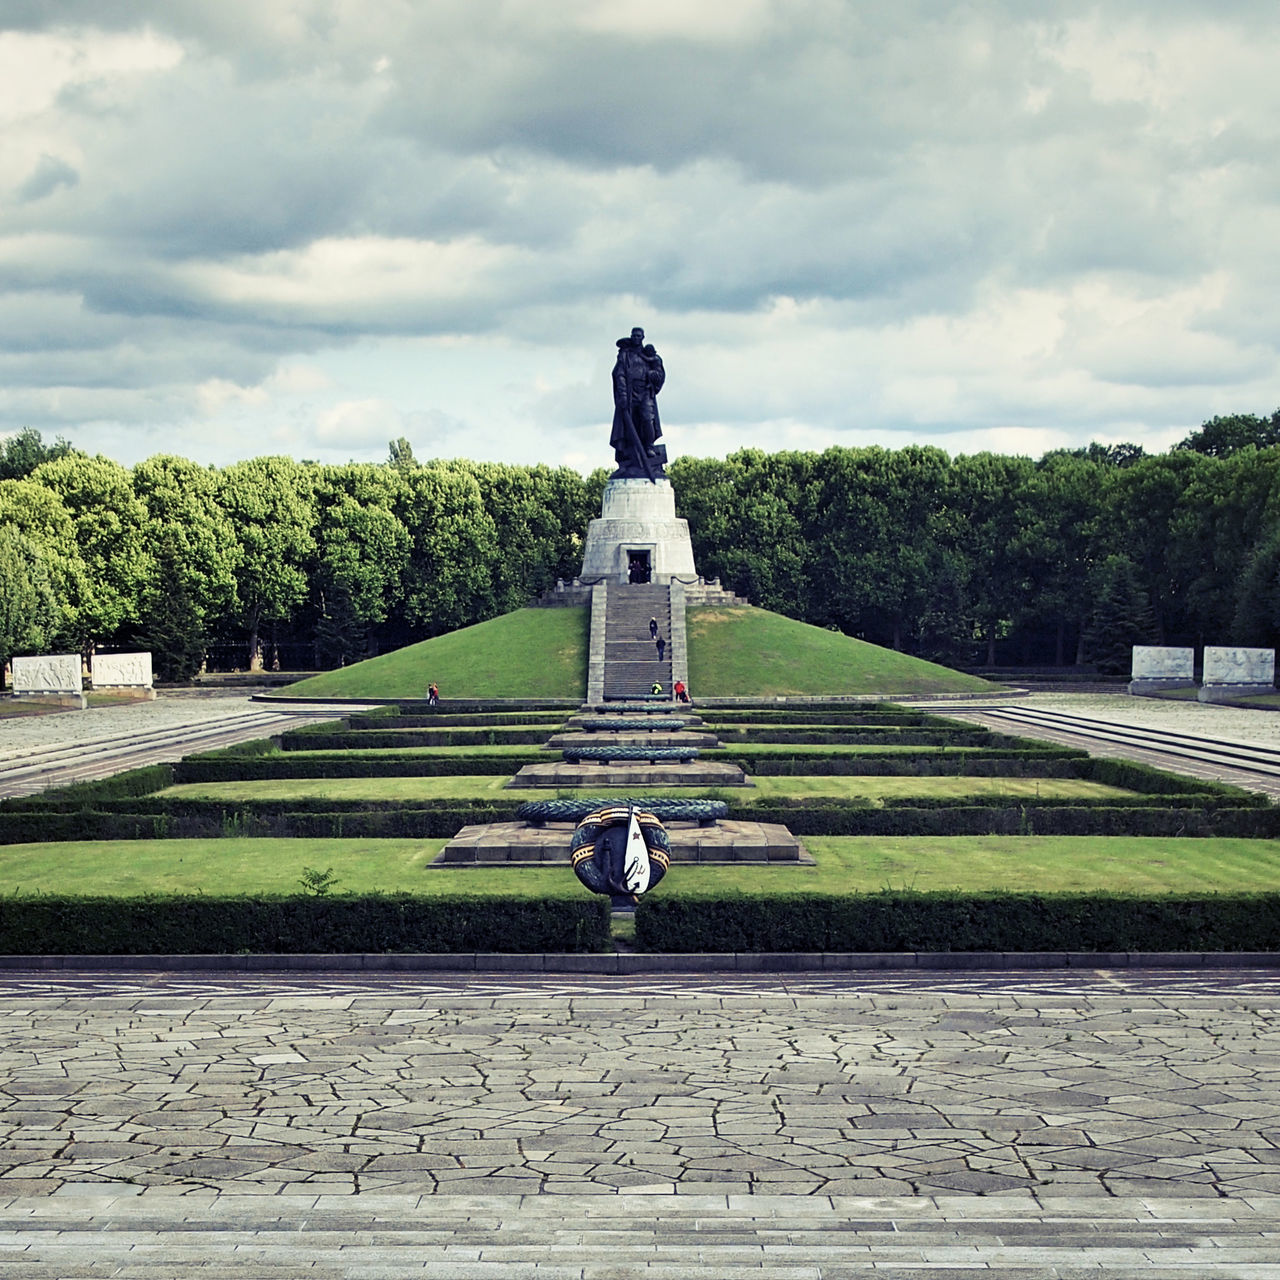 cloud - sky, statue, human representation, sky, sculpture, tree, male likeness, day, growth, outdoors, park - man made space, topiary, green color, monument, no people, history, memorial, nature, travel destinations, grass, water, beauty in nature